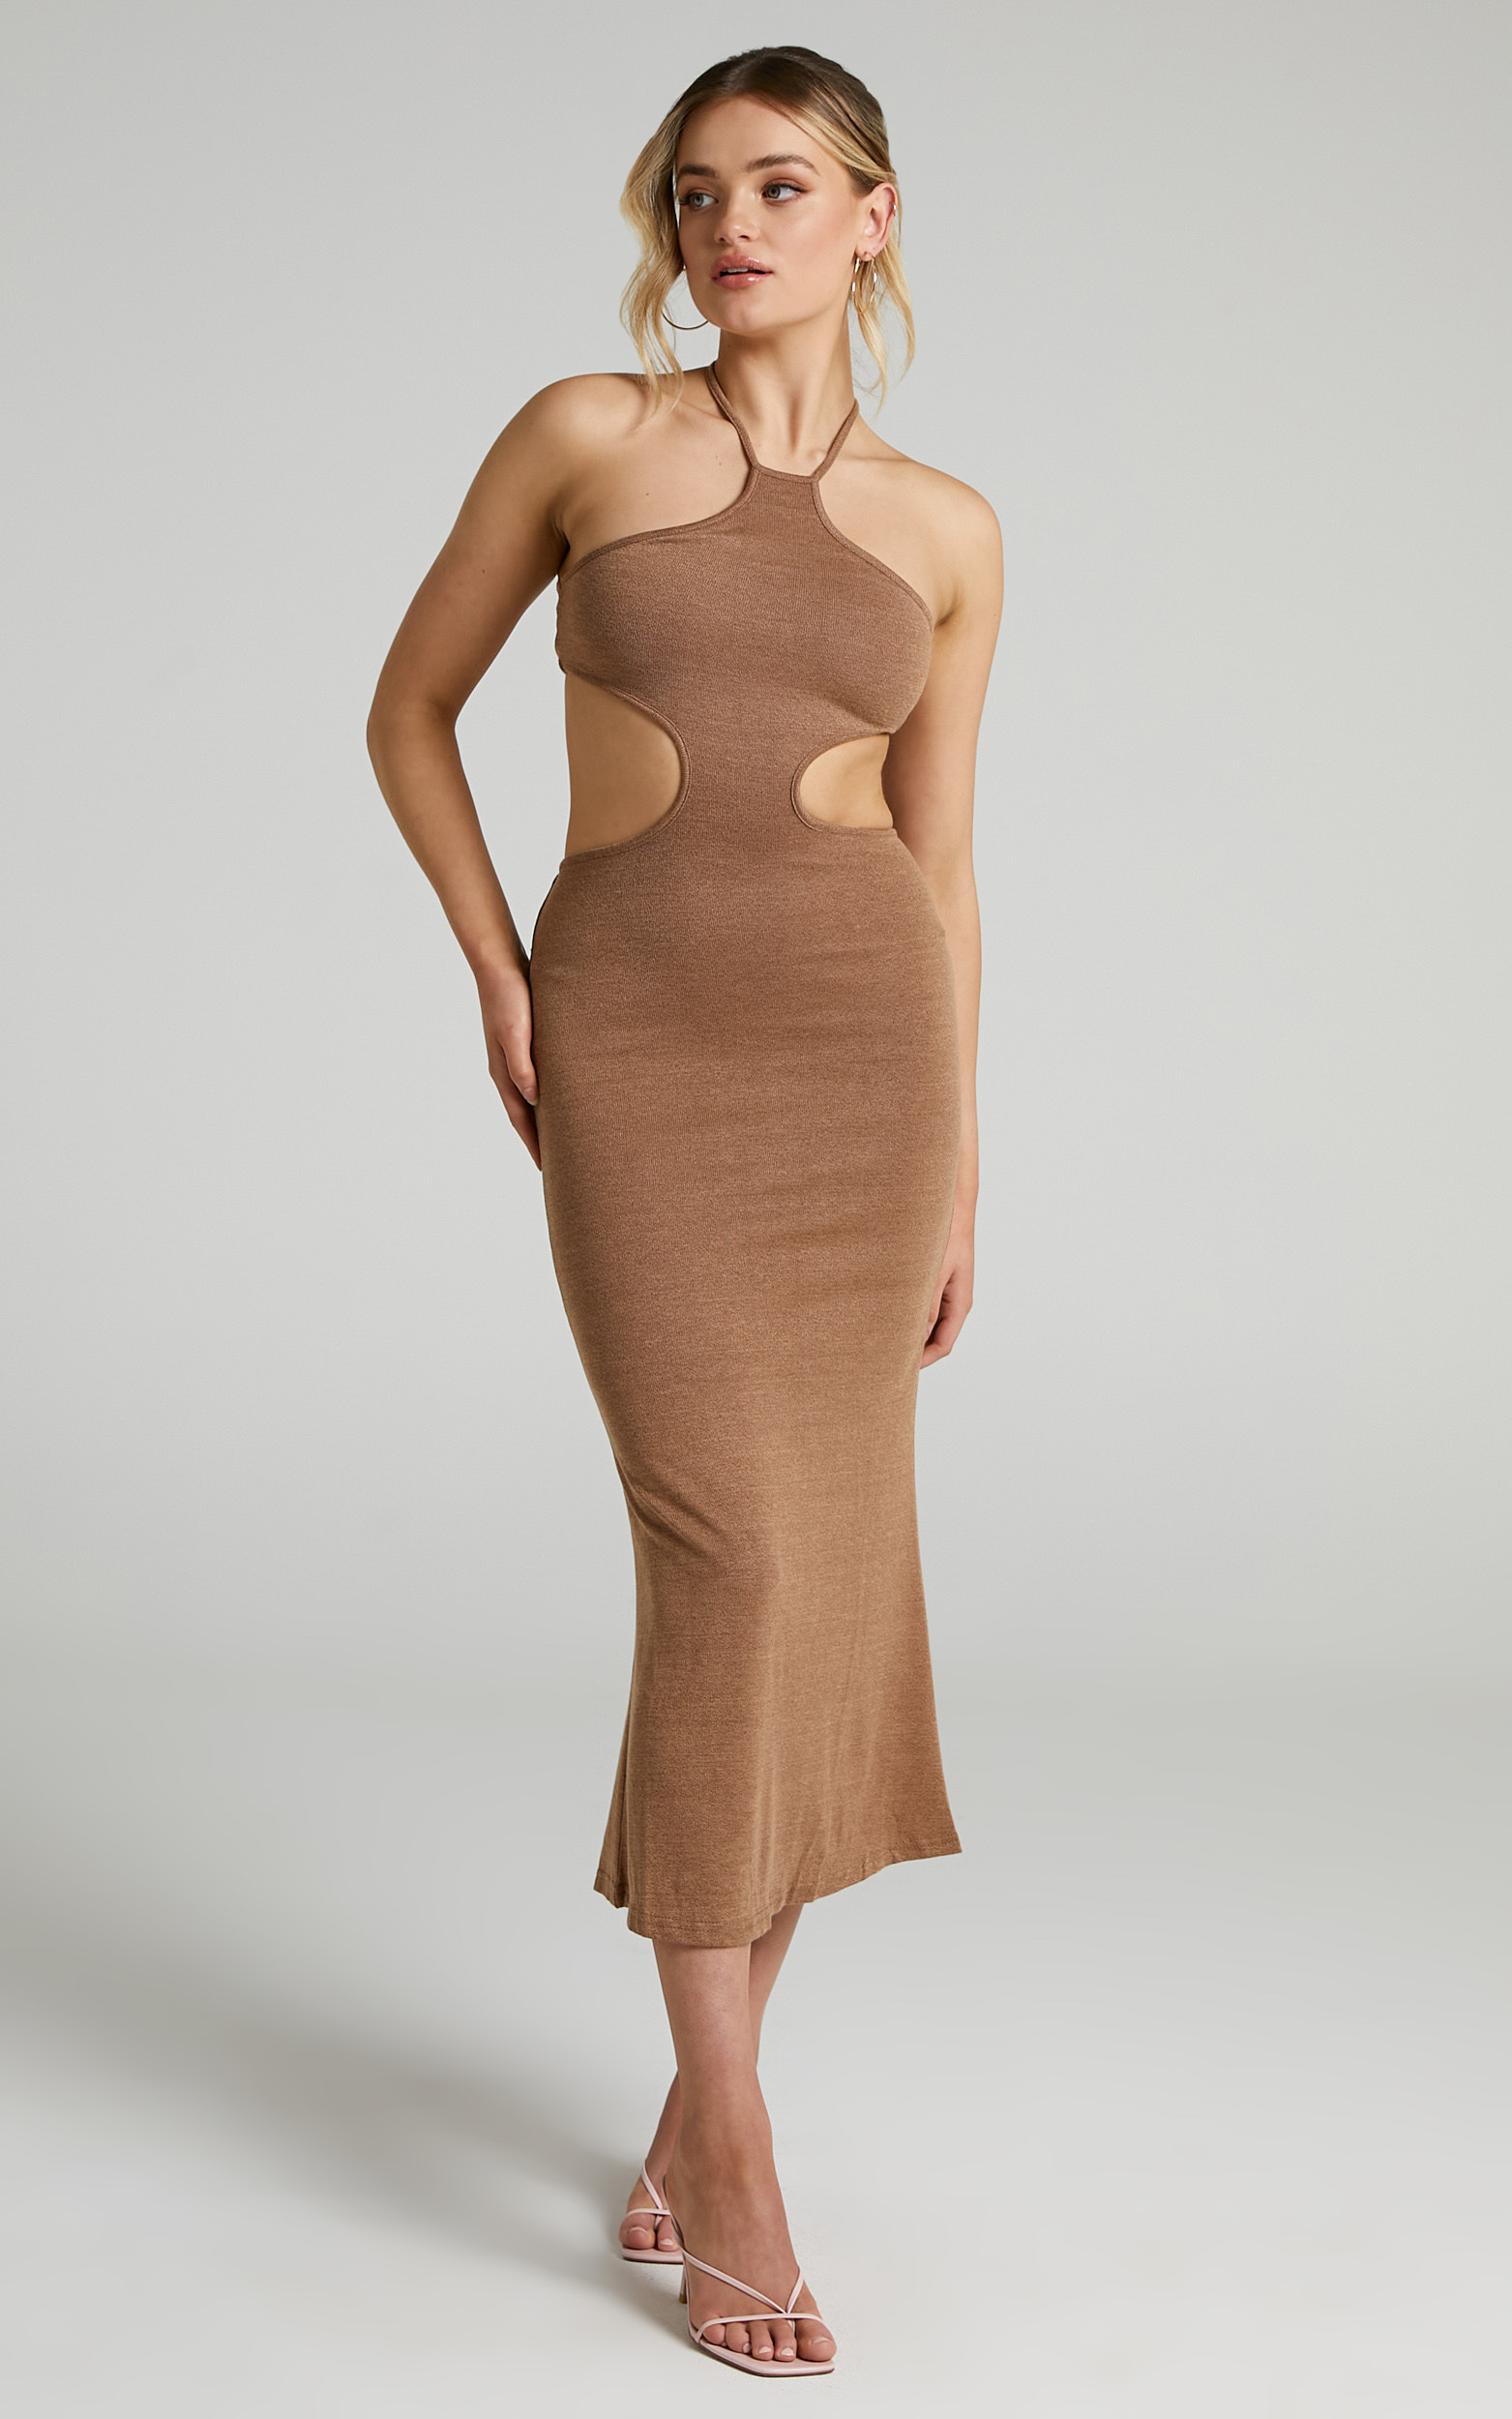 Saskia Side Cut Out Midi Dress in Chocolate - 06, BRN1, hi-res image number null